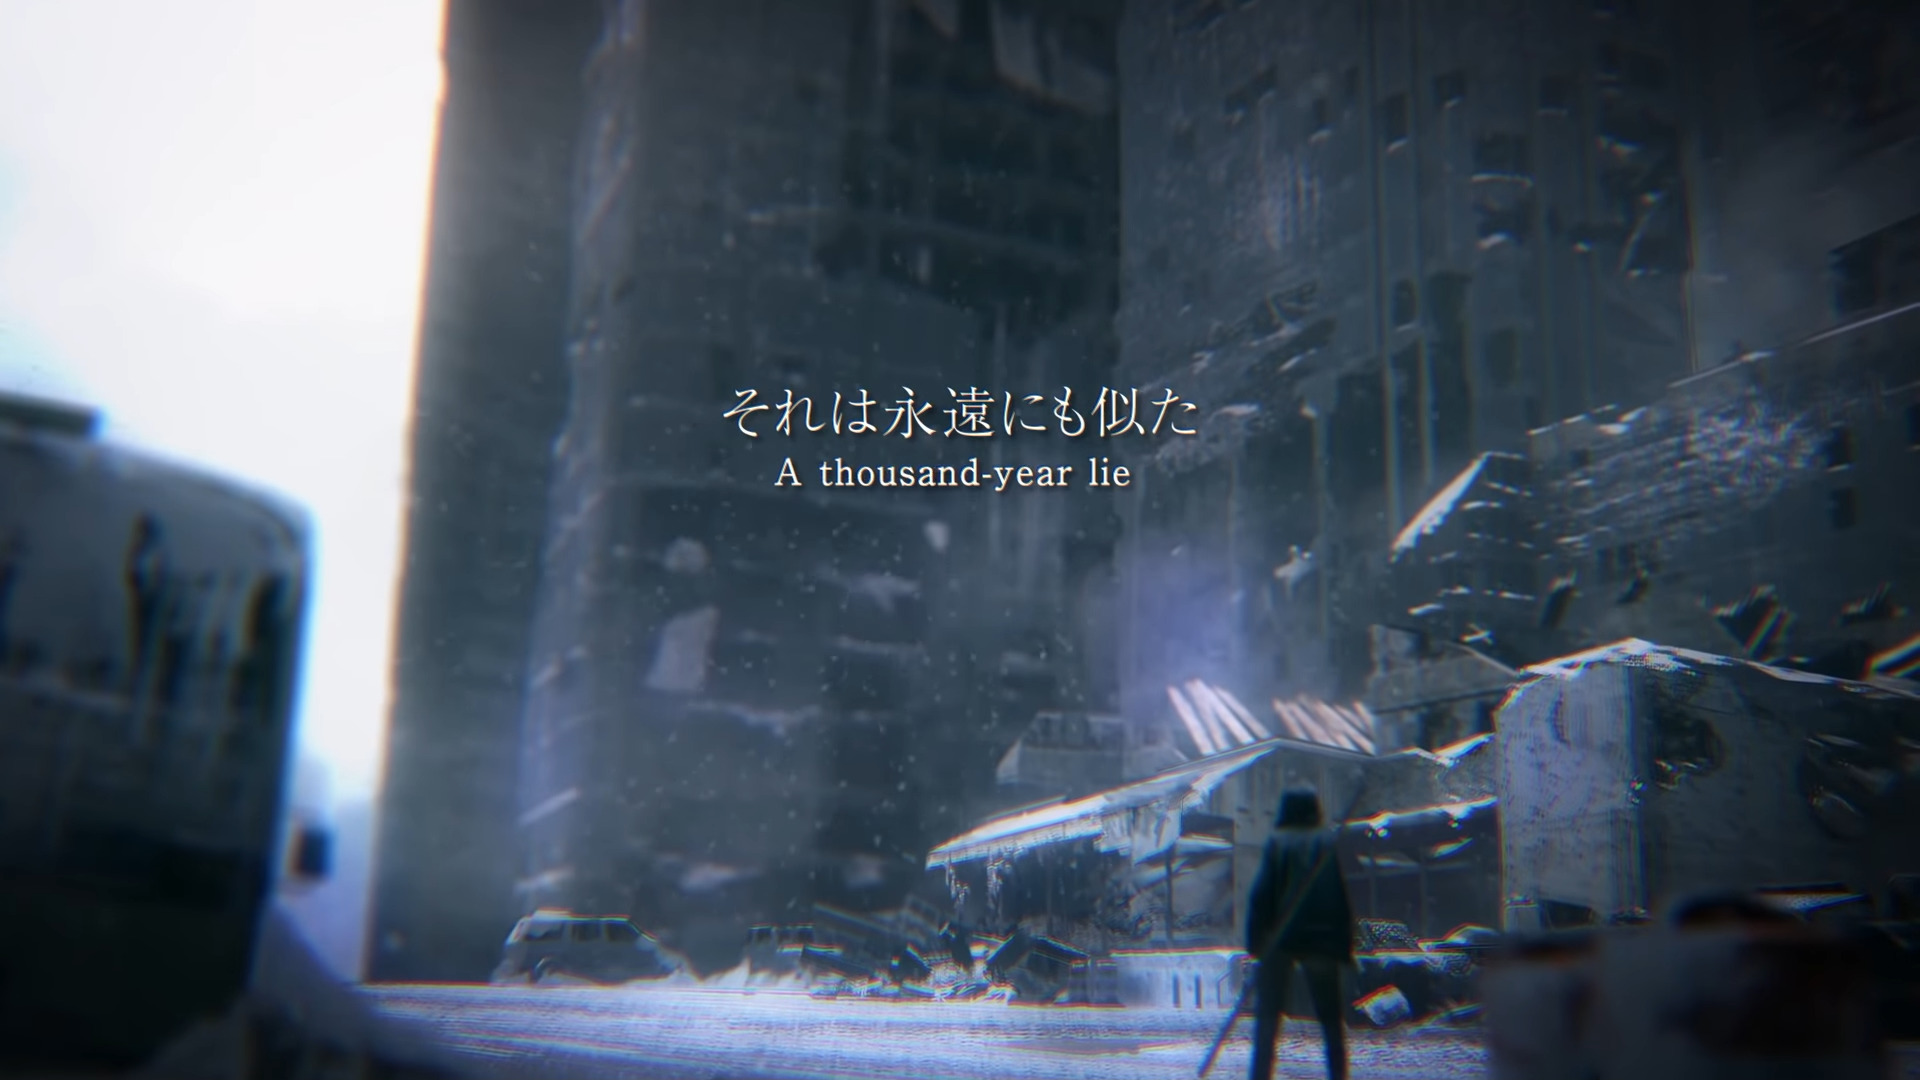 NieR Replicant ver.1.22474487139... Teaser screenshot